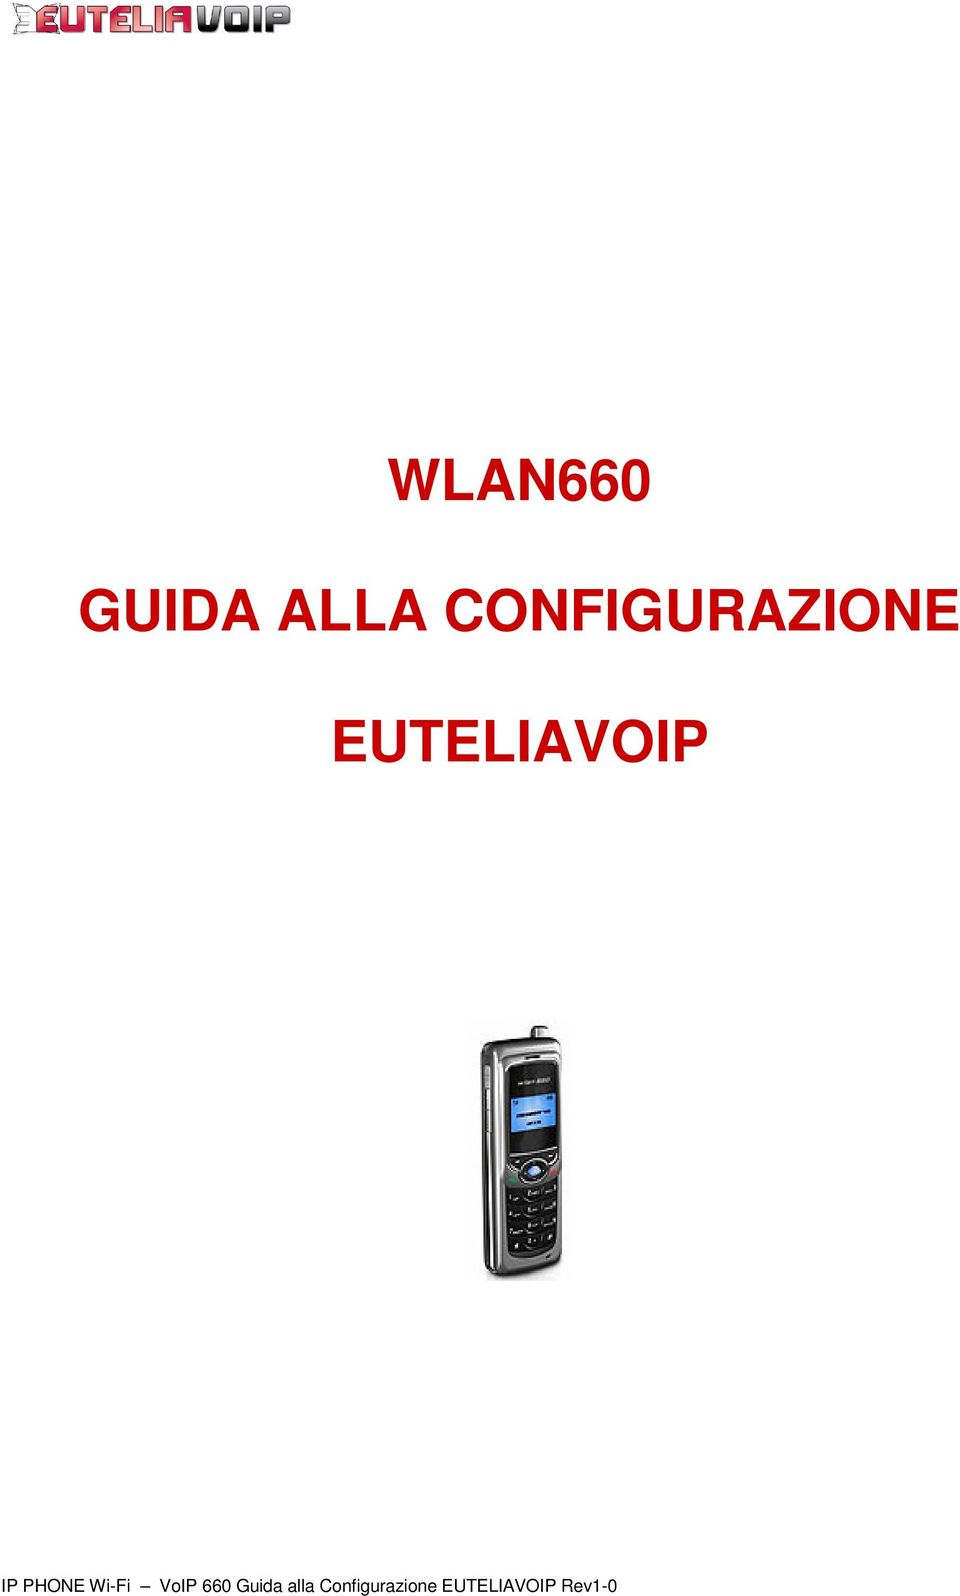 IP PHONE Wi-Fi VoIP 660